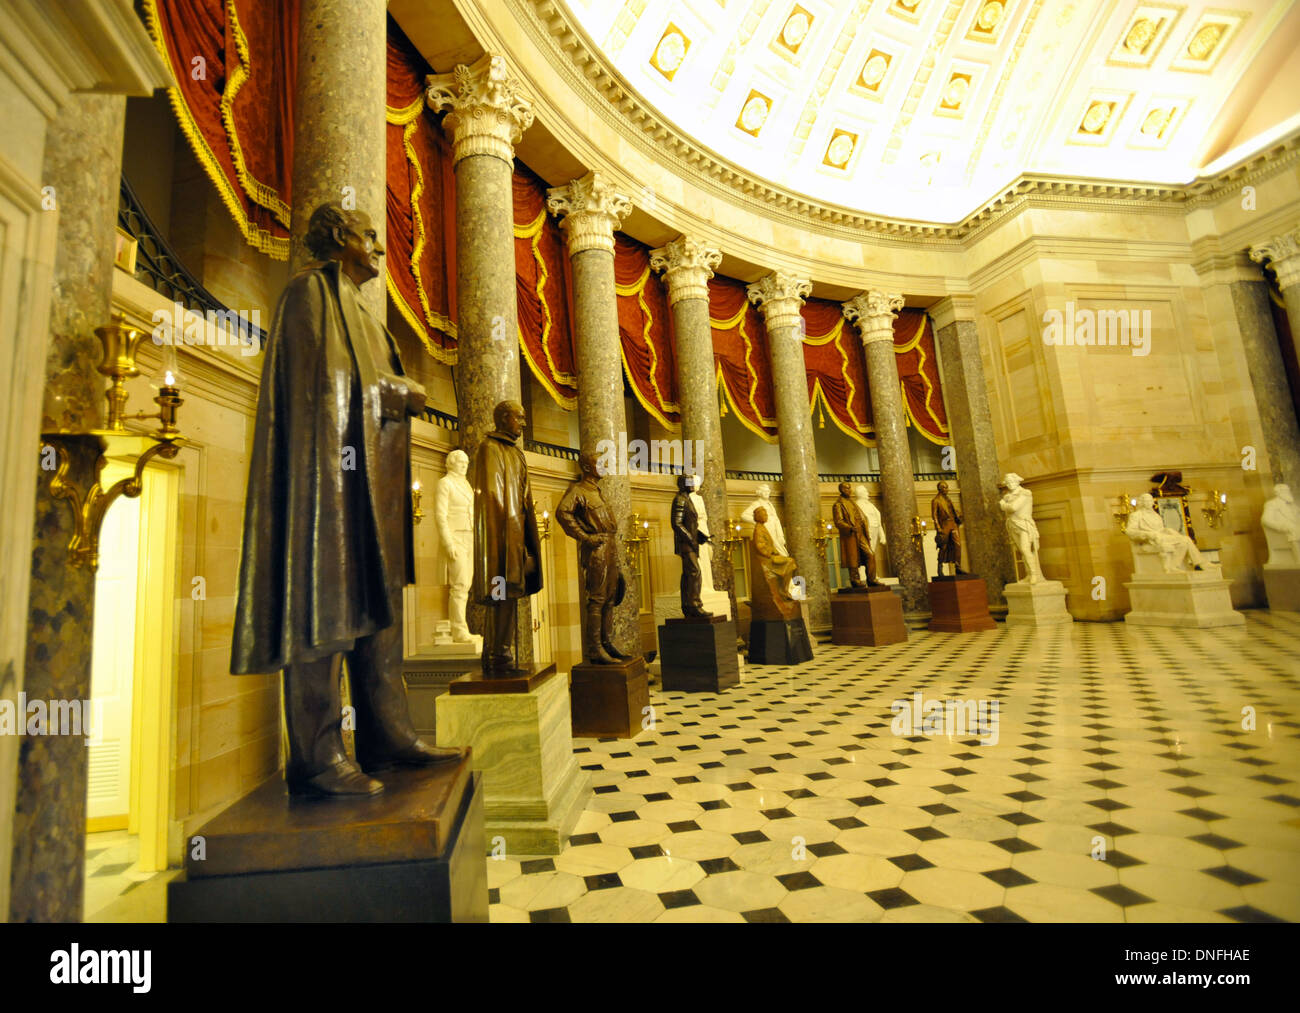 US Capital, National Statuary Hall, chamber in United States Capitol devoted to sculptures of prominent Americans, The hall, - Stock Image